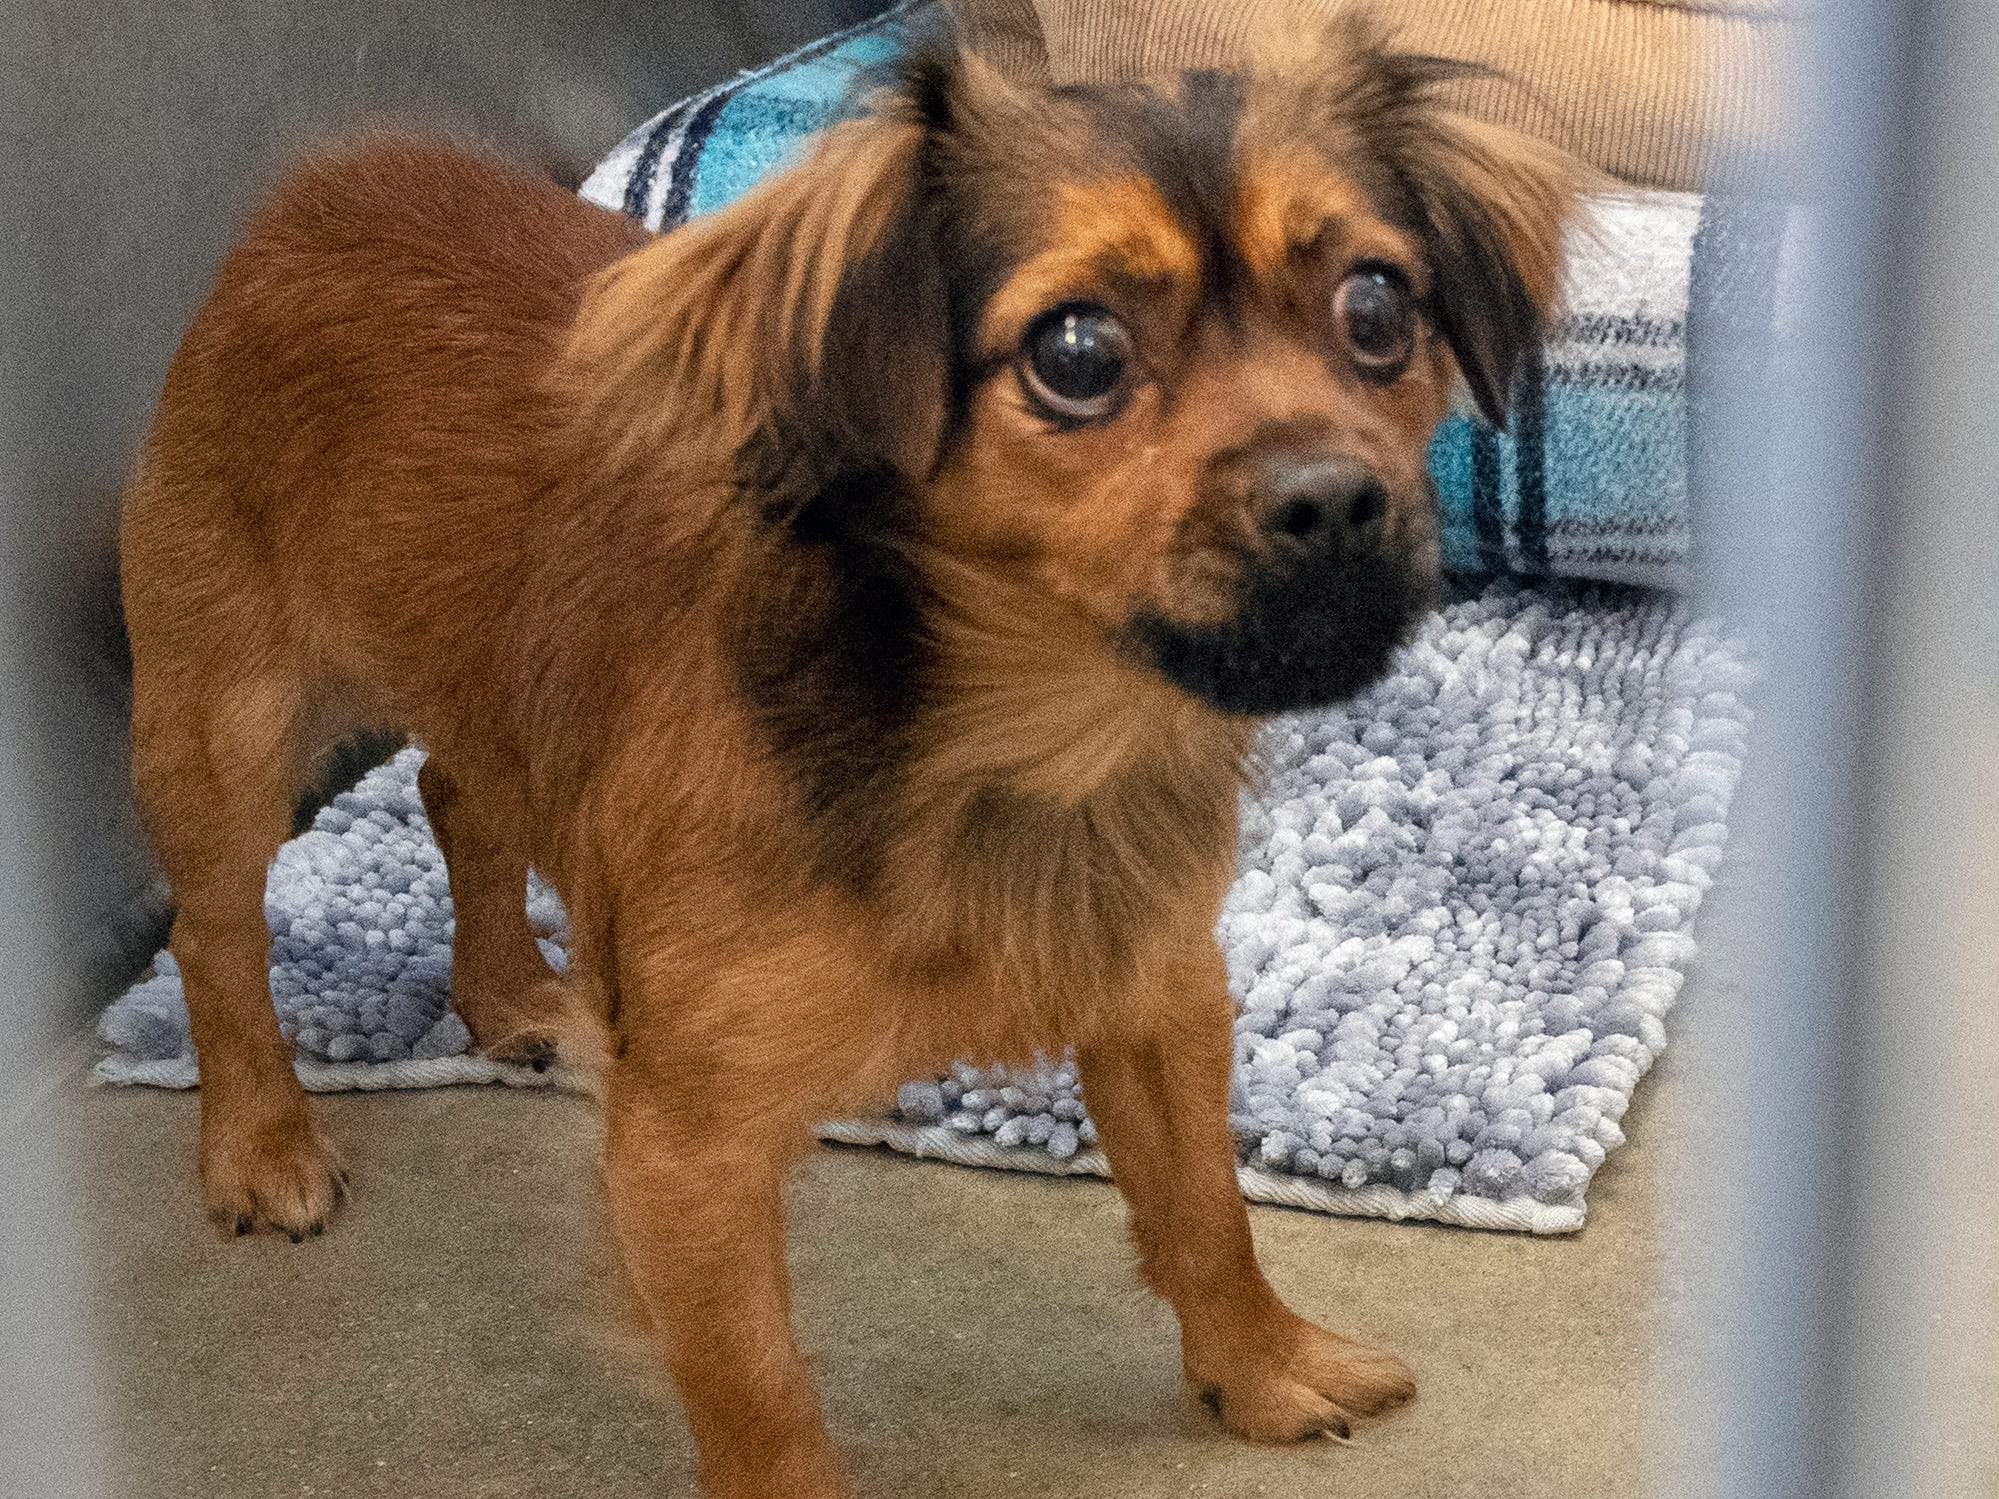 Oso, a 2-year-old mixed Chihuahua, was brought to the shelter because he was not allowed in the owner's home. He has lived with cats in the past and would do best in a home with older kids. He is available for adoption at the York County SPCA Tuesday February 26, 2019.